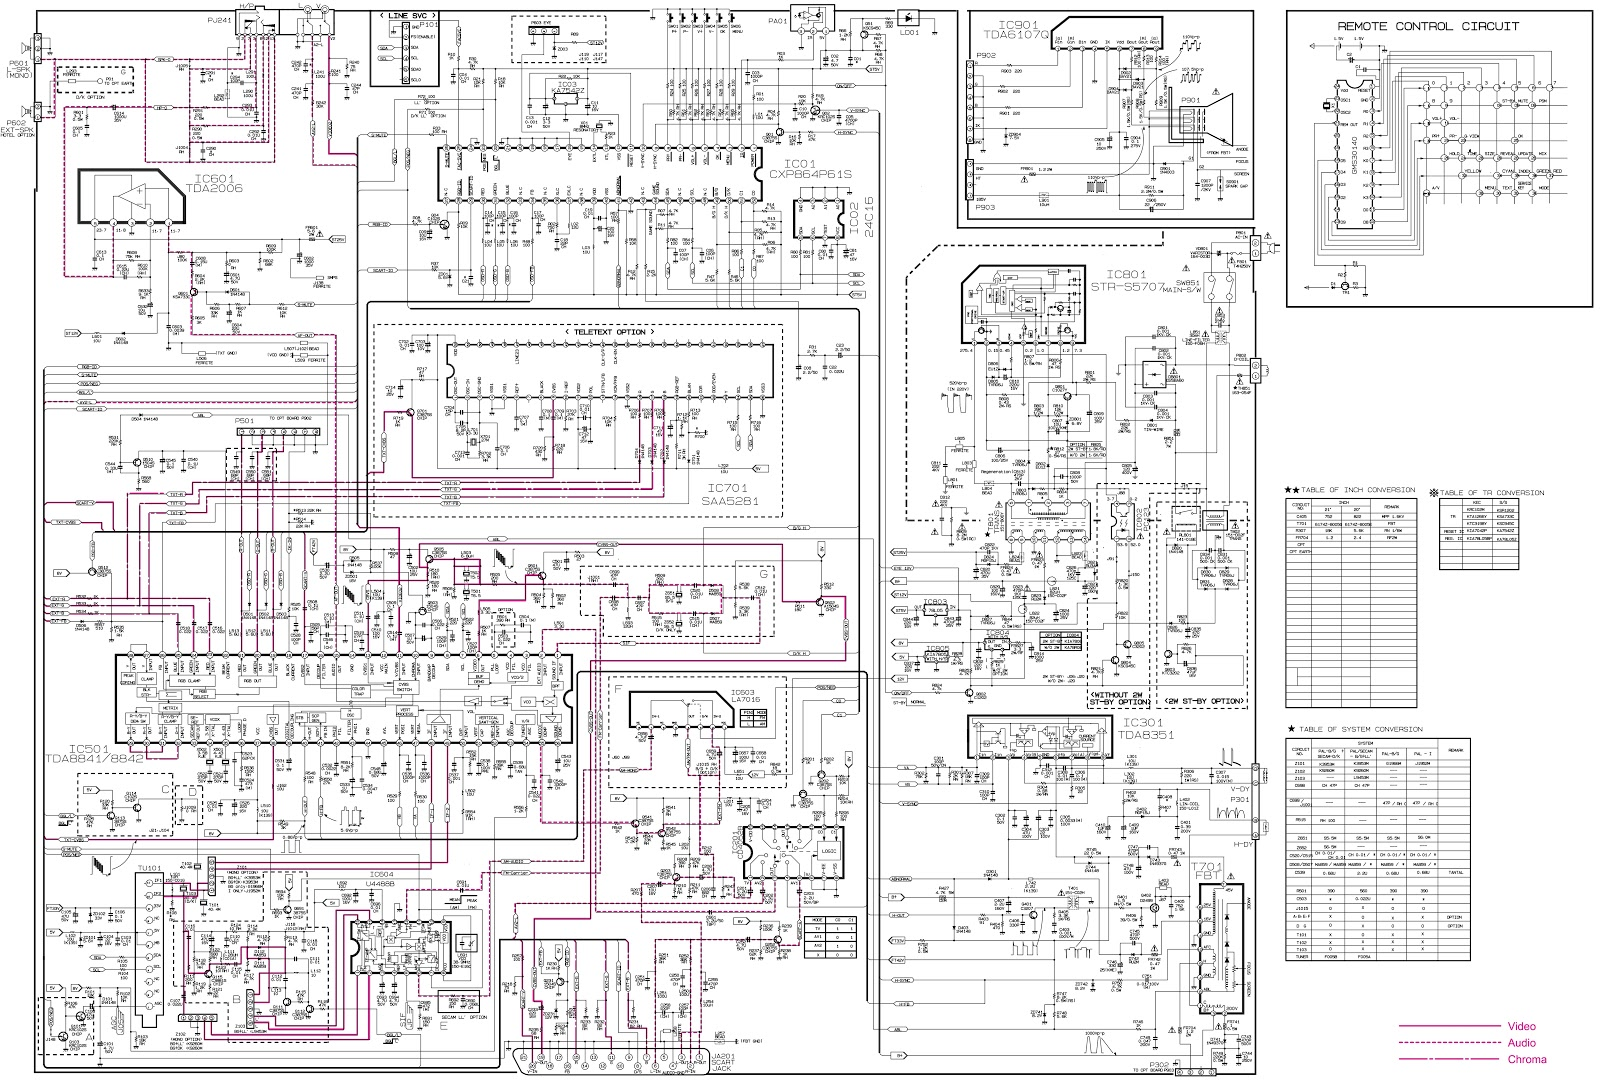 Television Wiring Diagram Crt Diagrams Explained Circuit Of Samsung Tv Trusted U2022